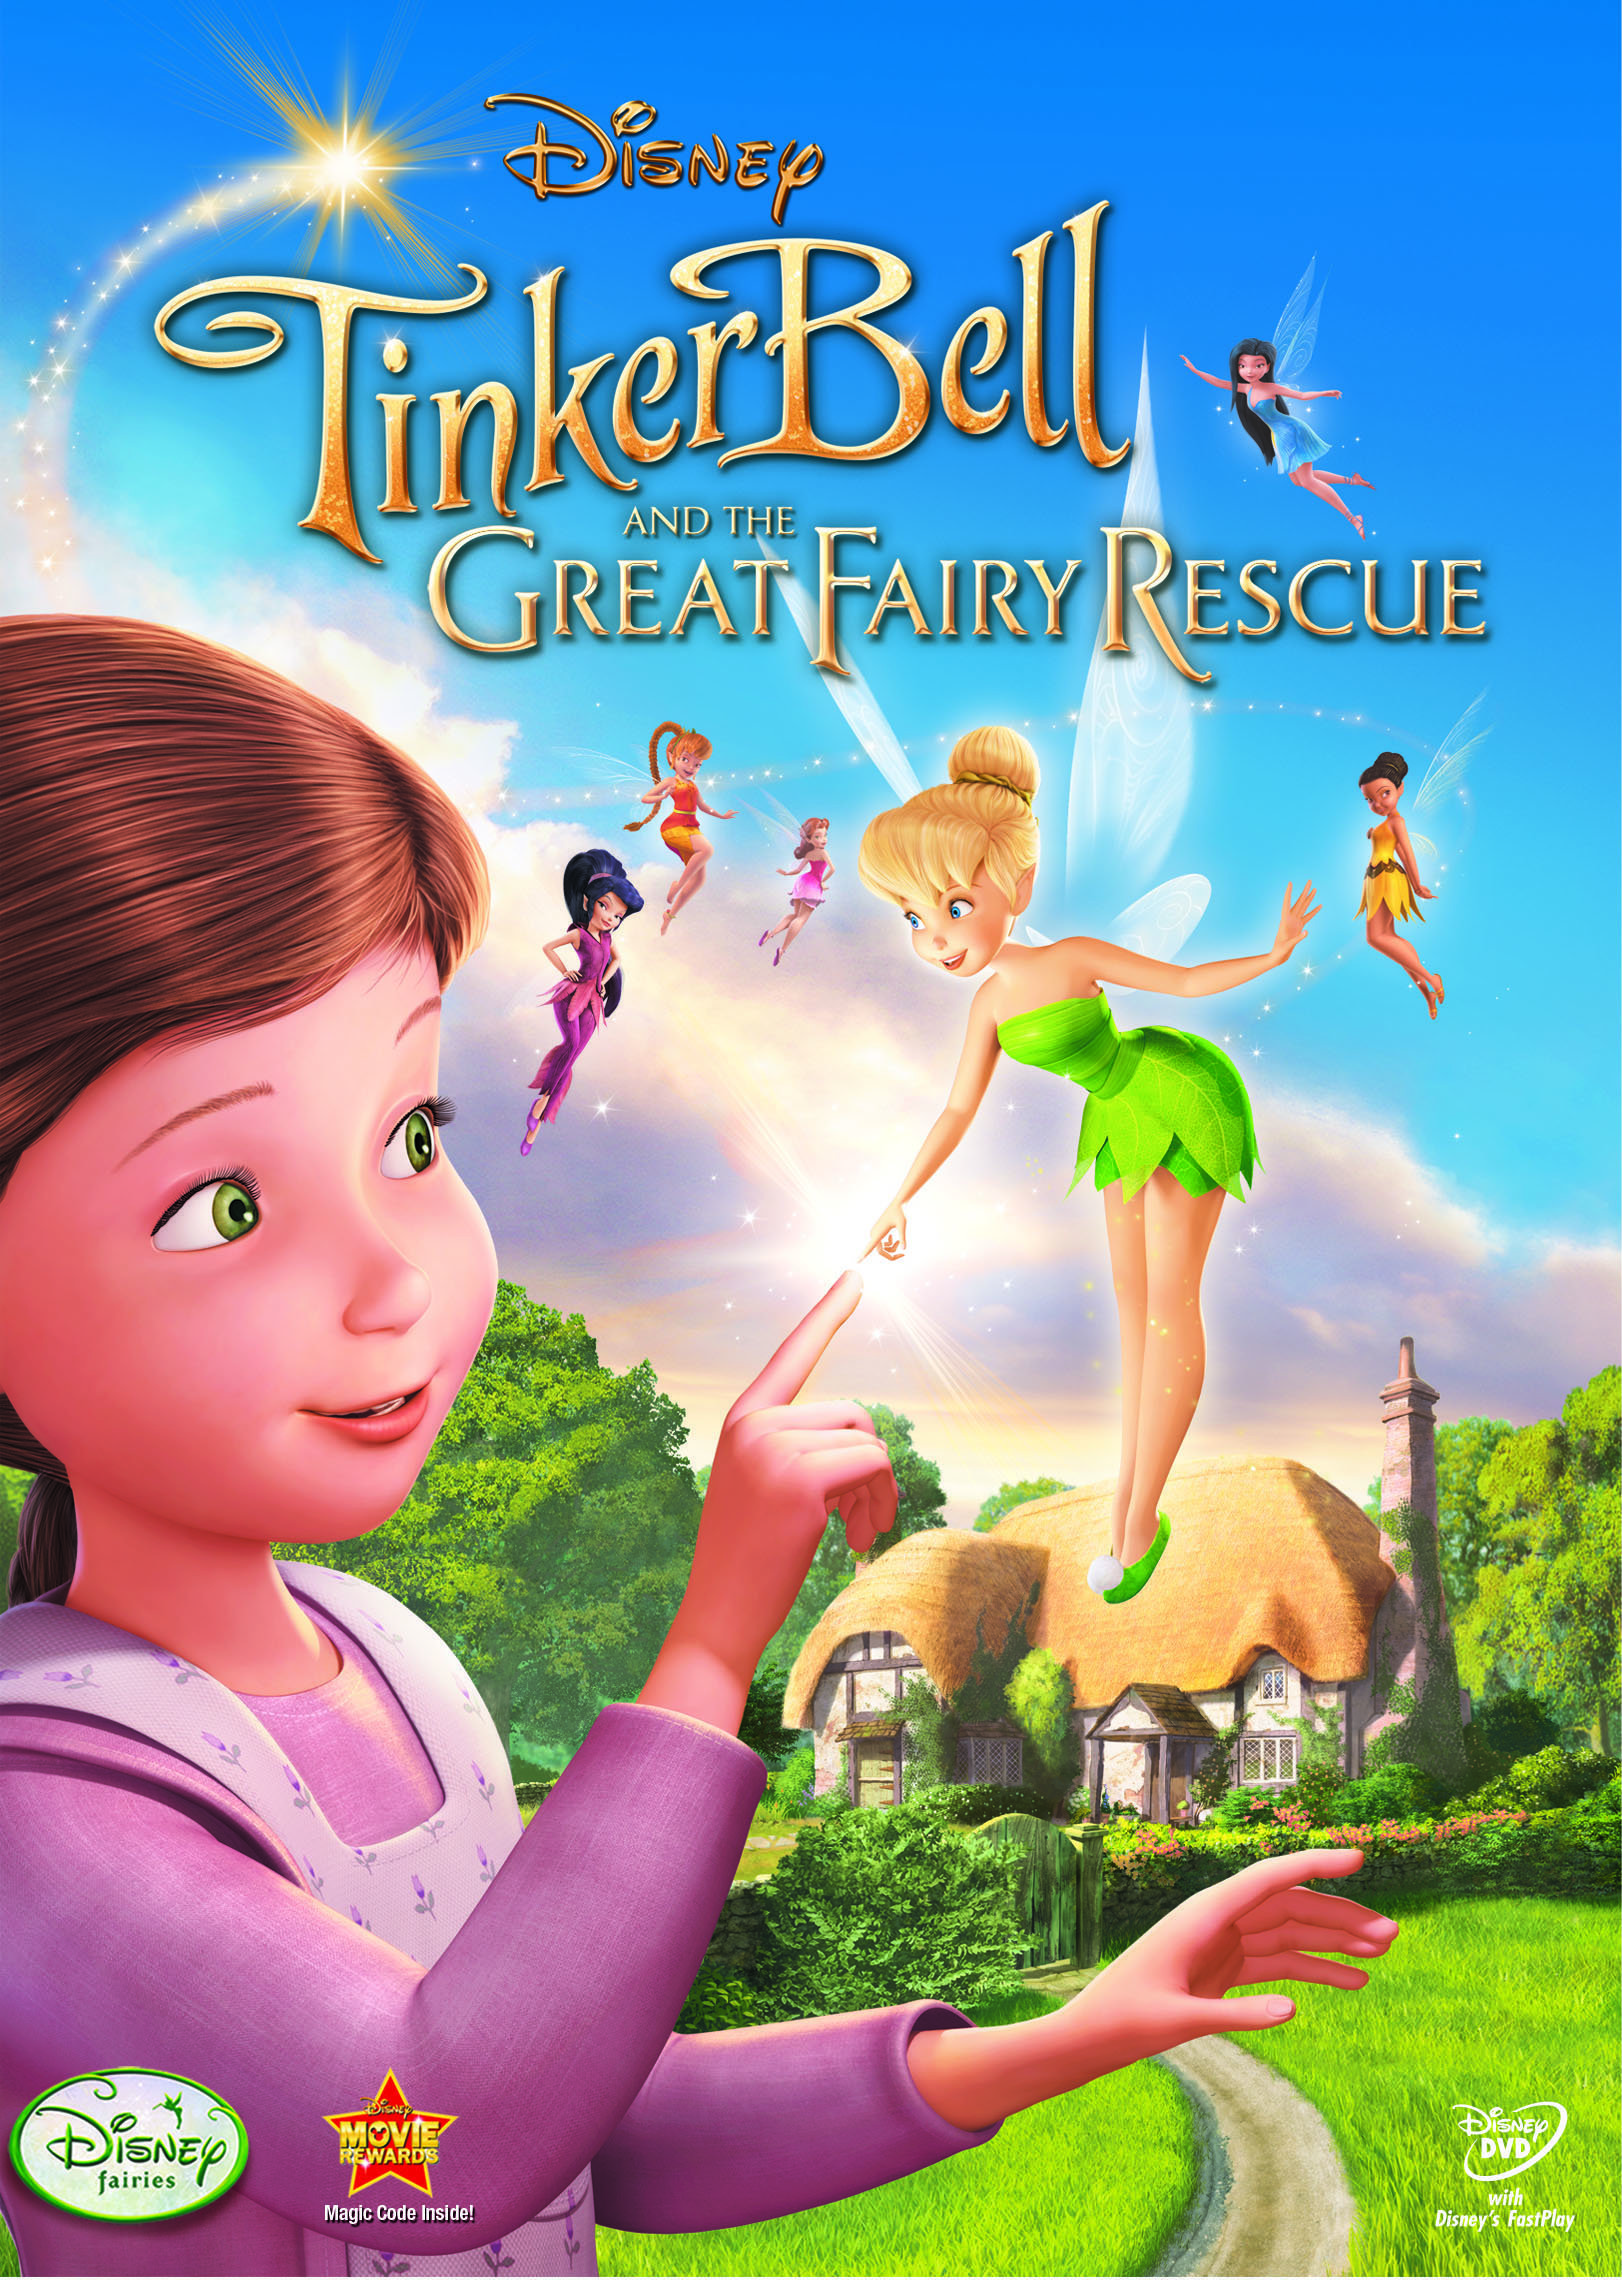 0959 - Tinker Bell And The Great Fairy Rescue